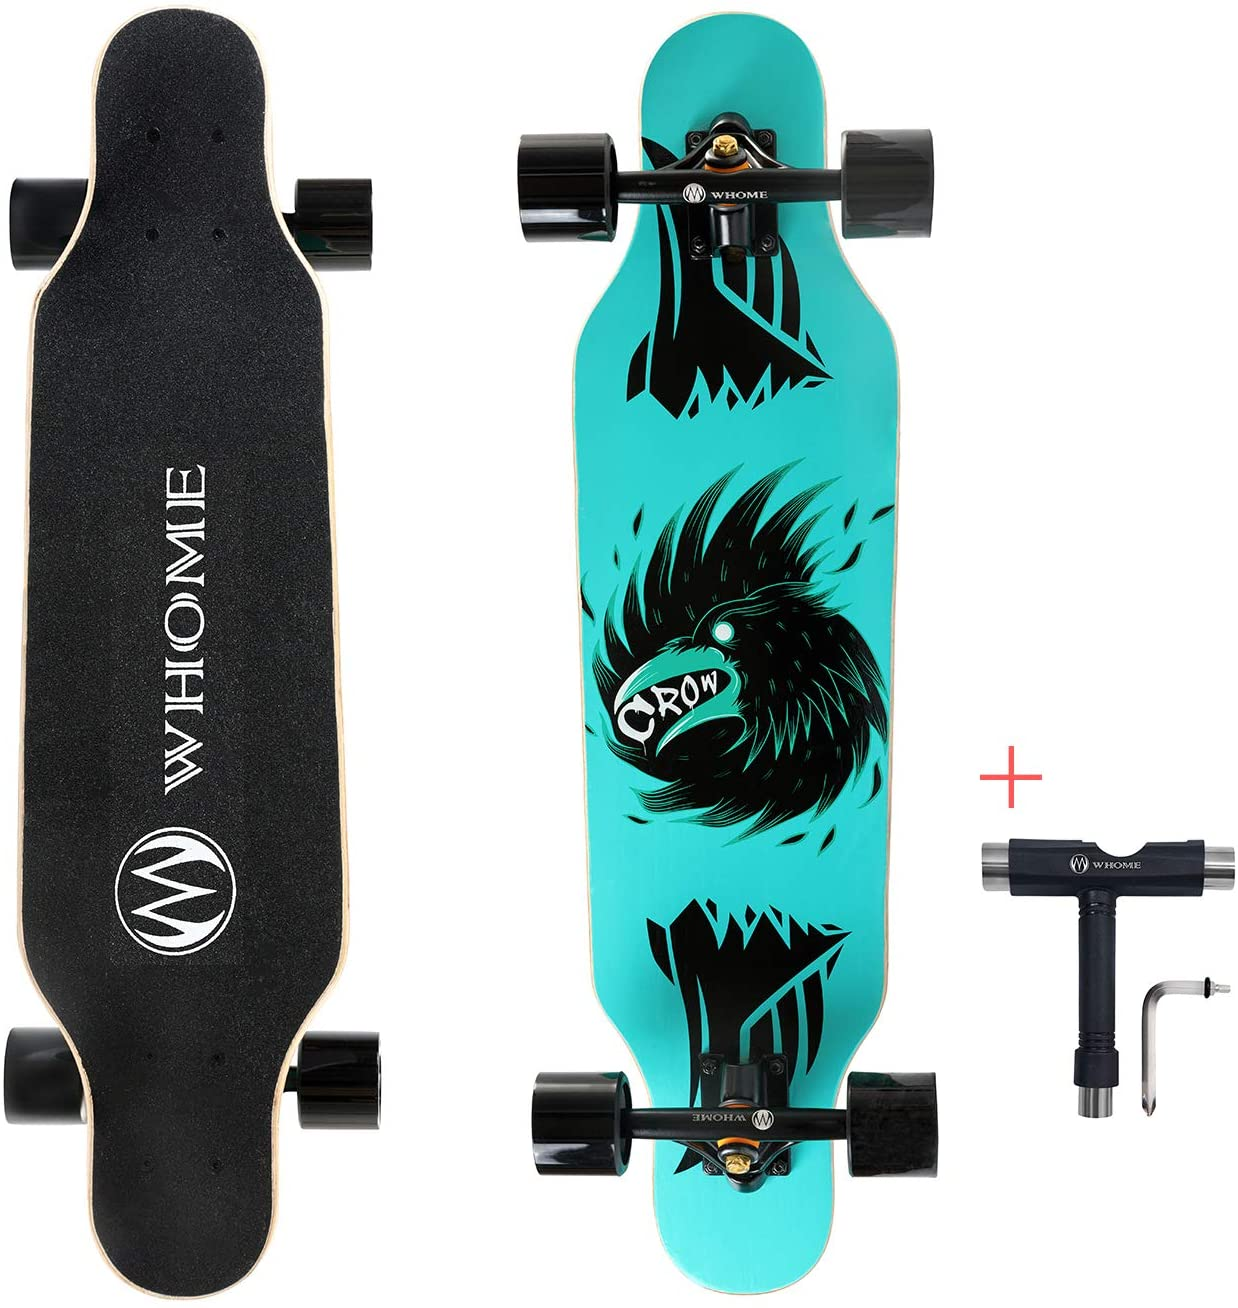 WHOME Pro Small - Budget-Friendly Drop Through Short Longboard